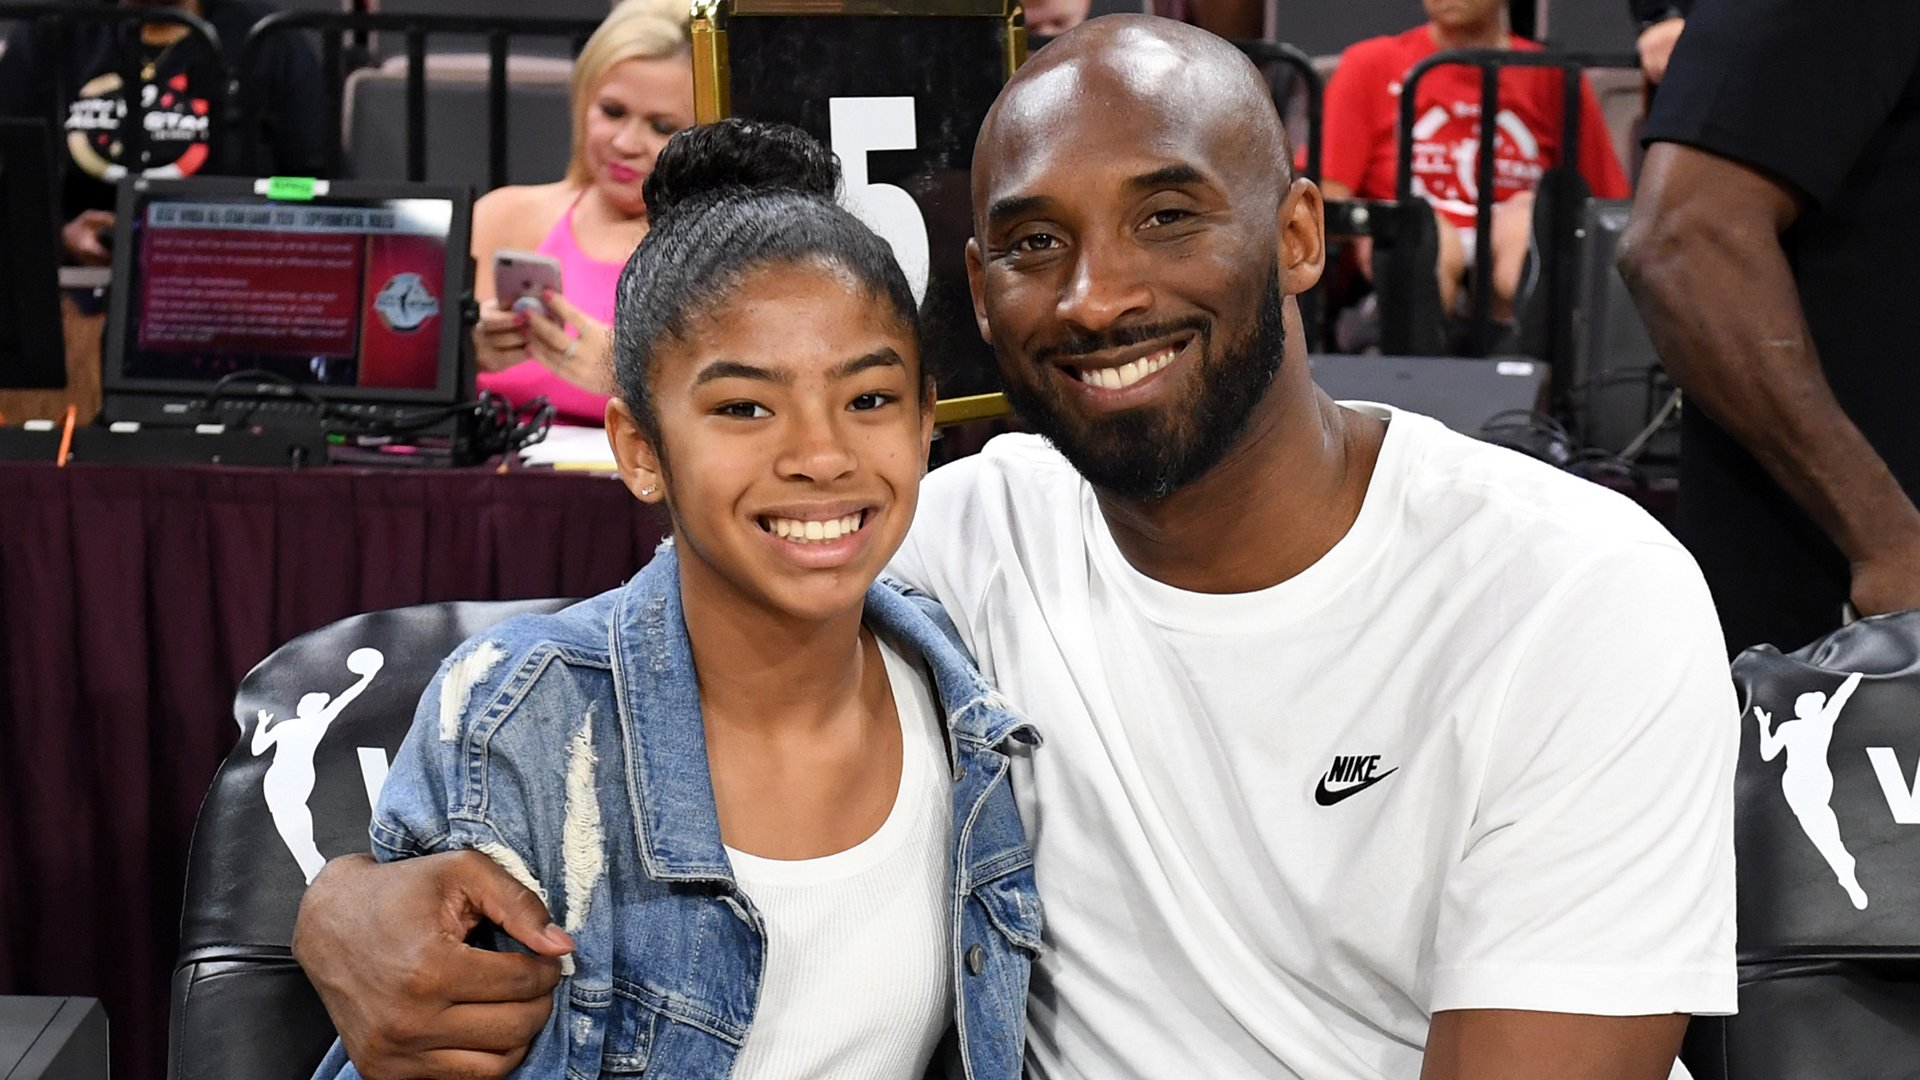 Kobe and Gianna Bryant attend the WNBA All-Star Game 2019 at the Mandalay Bay Events Center on July 27, 2019, in Las Vegas. (Credit: Ethan Miller/Getty Images)